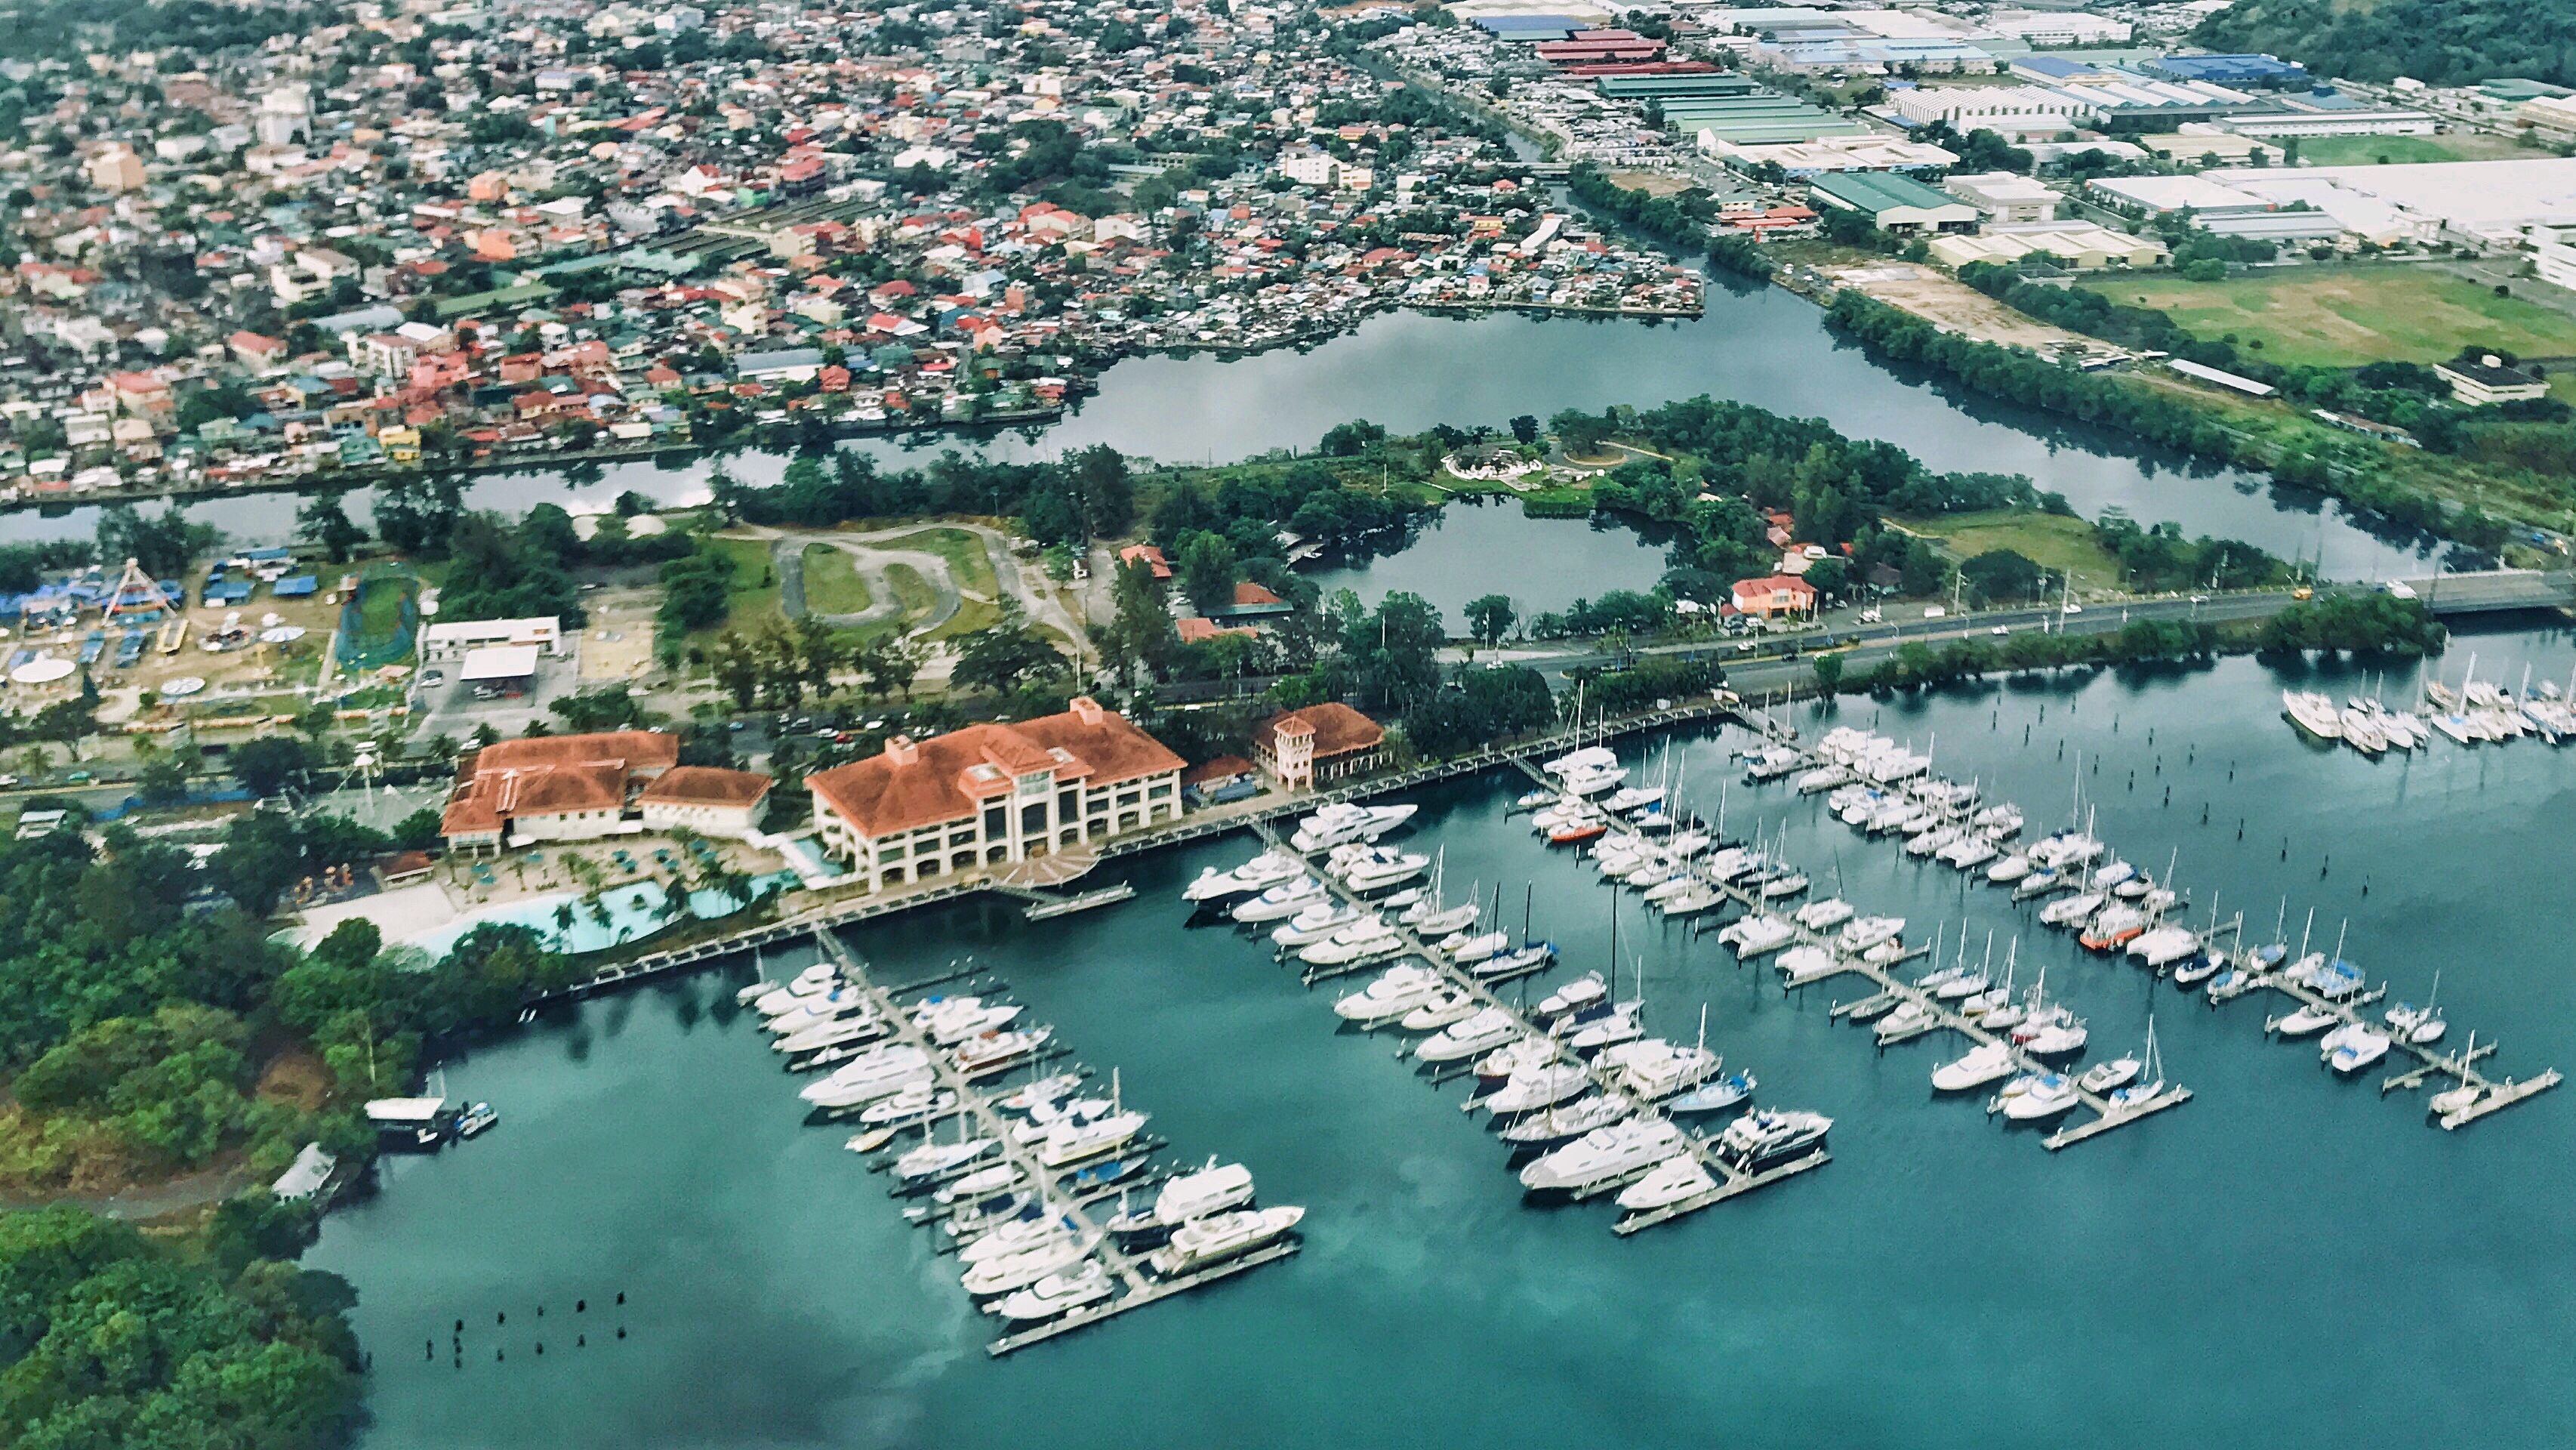 Subic Bay Yacht Club is located along Rizal Avenue inside the Subic Bay Freeport Zone, Philippines